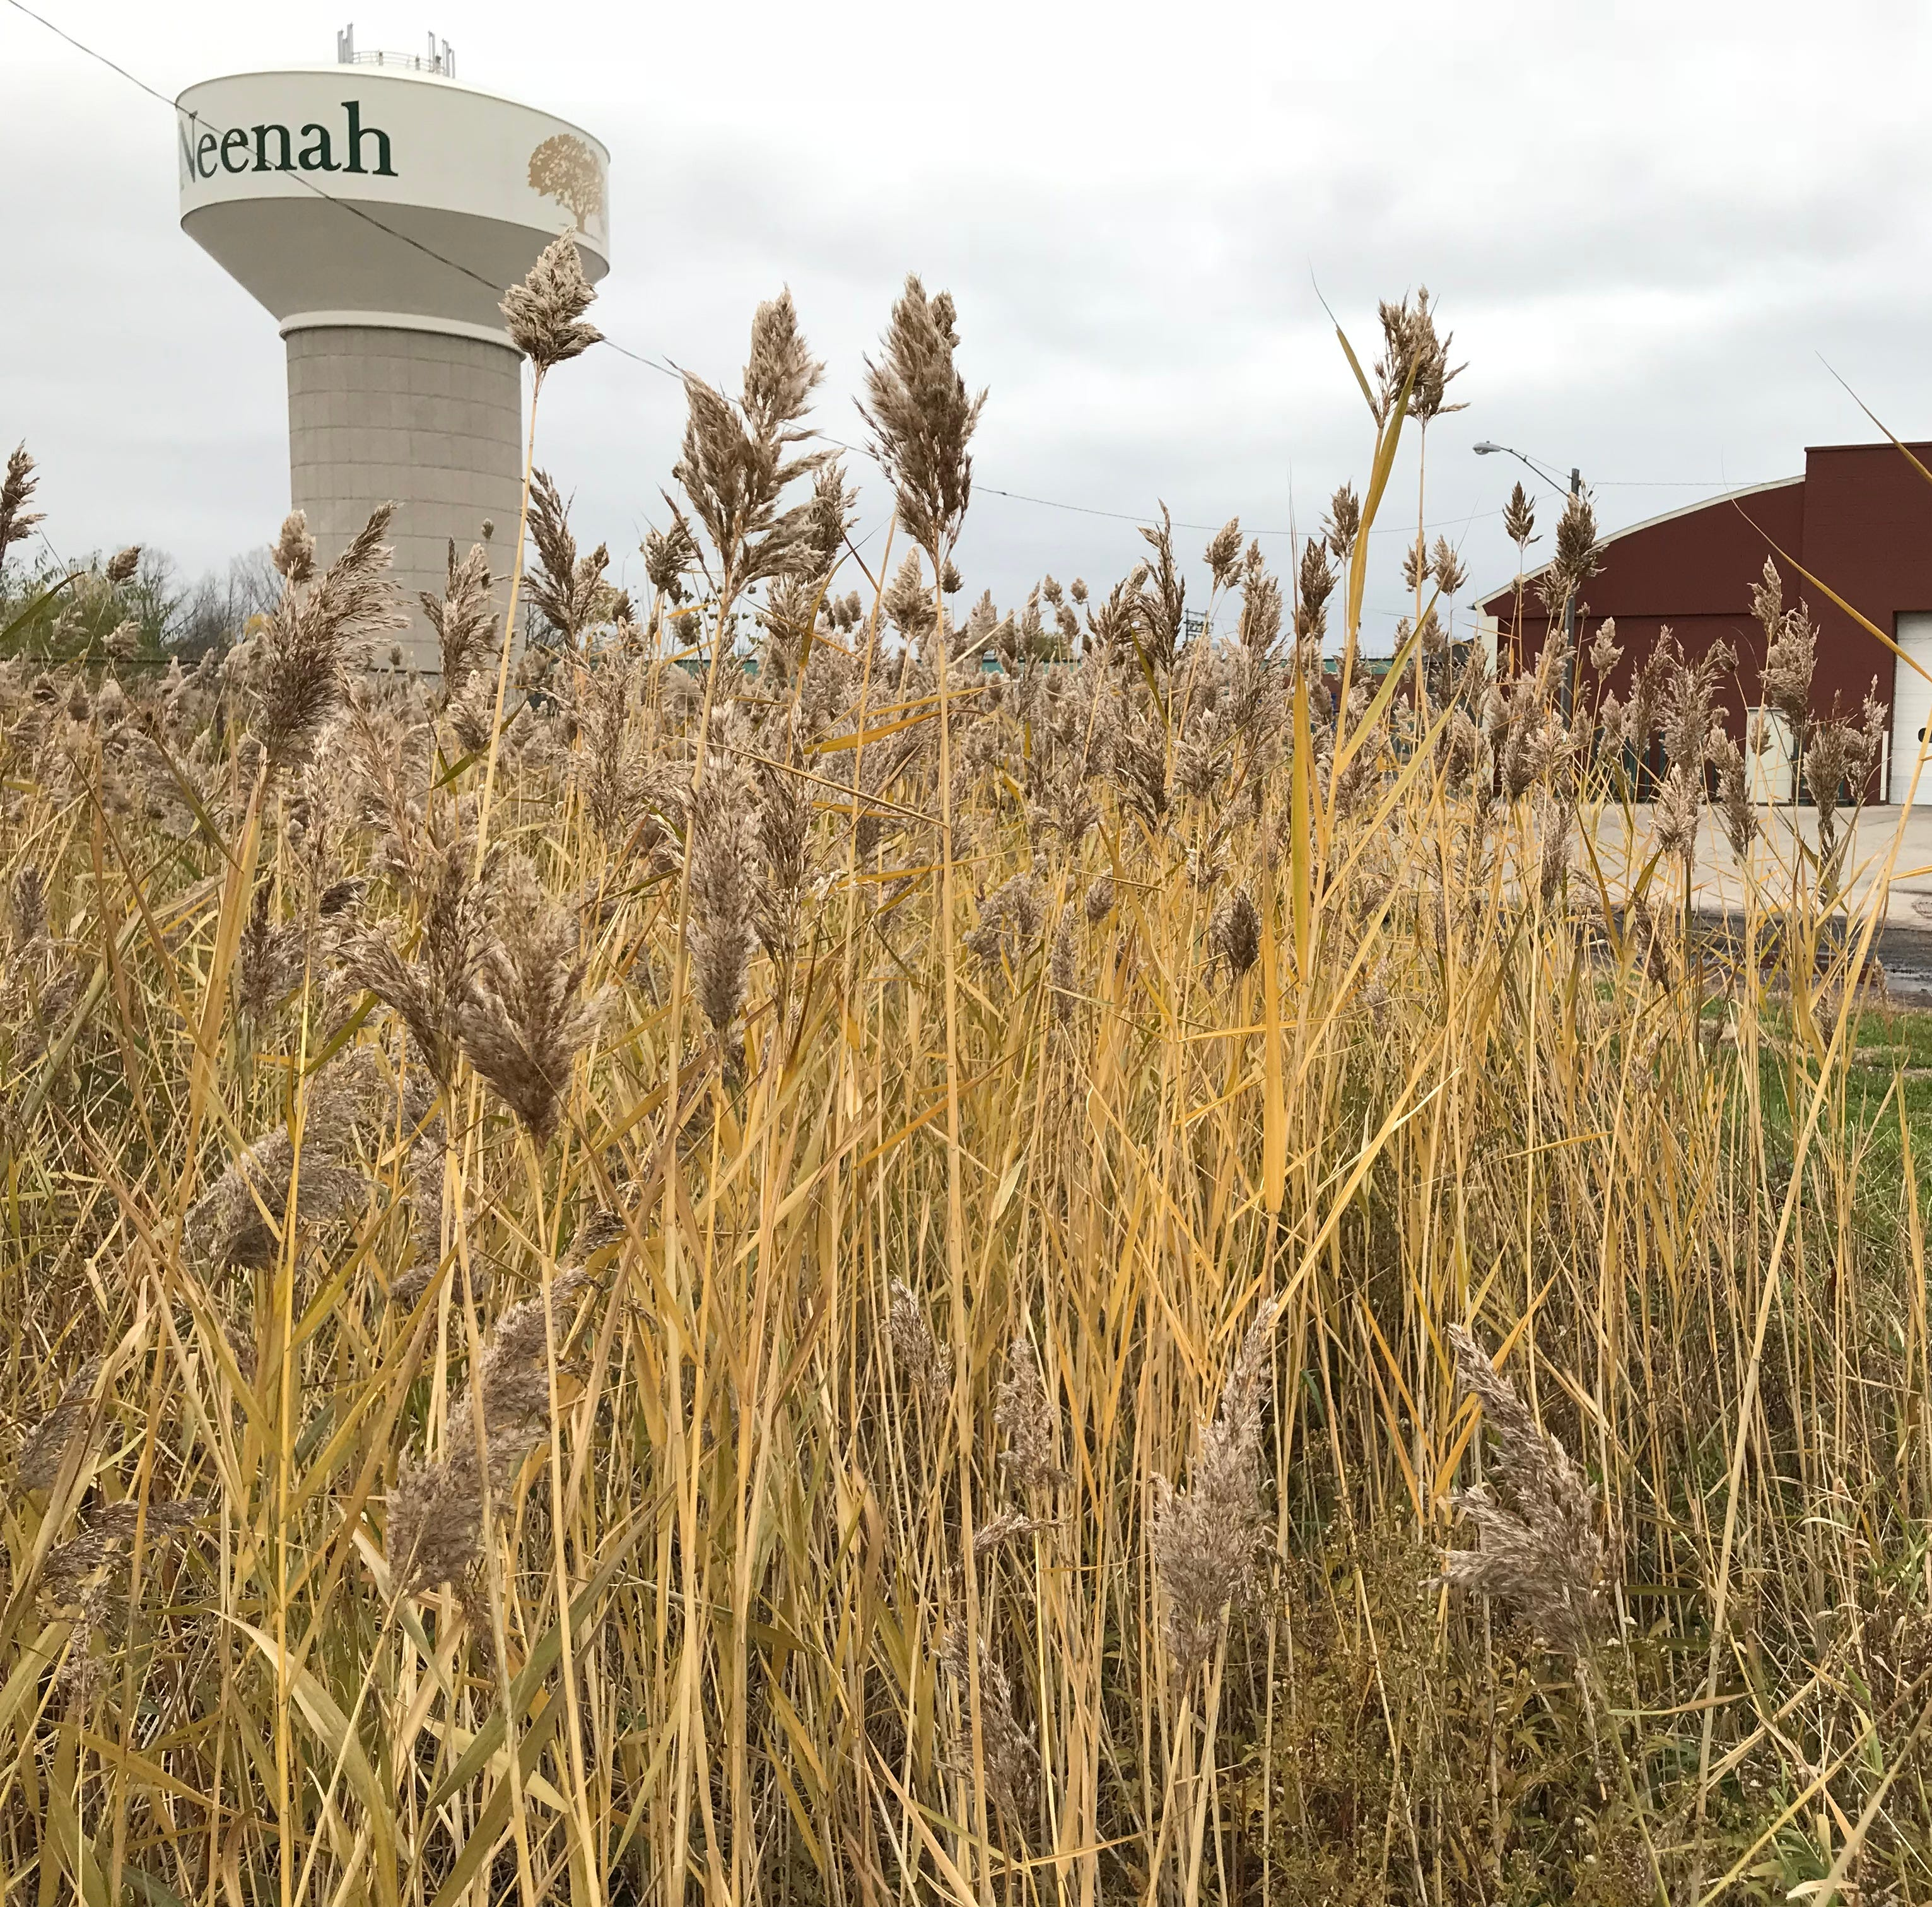 Neenah, DNR work to control stand of invasive phragmites on city property